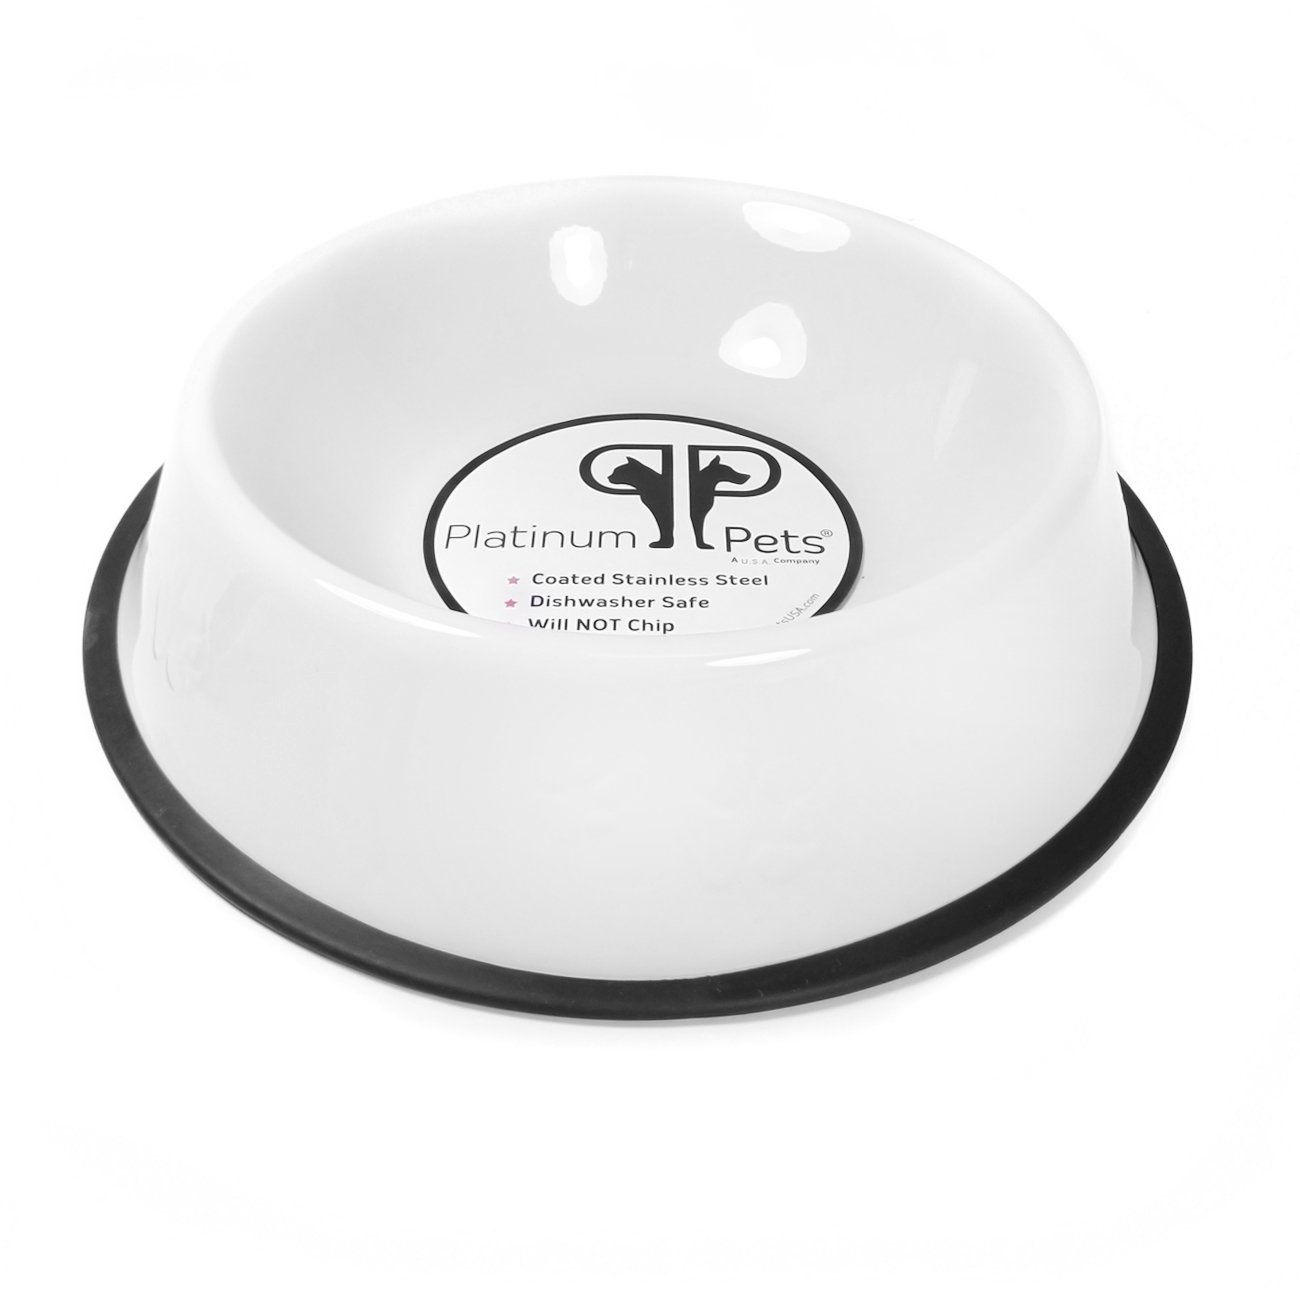 Pet Supplies : Platinum Pets 2 Cup Embossed Non-Tip Stainless Steel Dog Bowl, White : Amazon.com